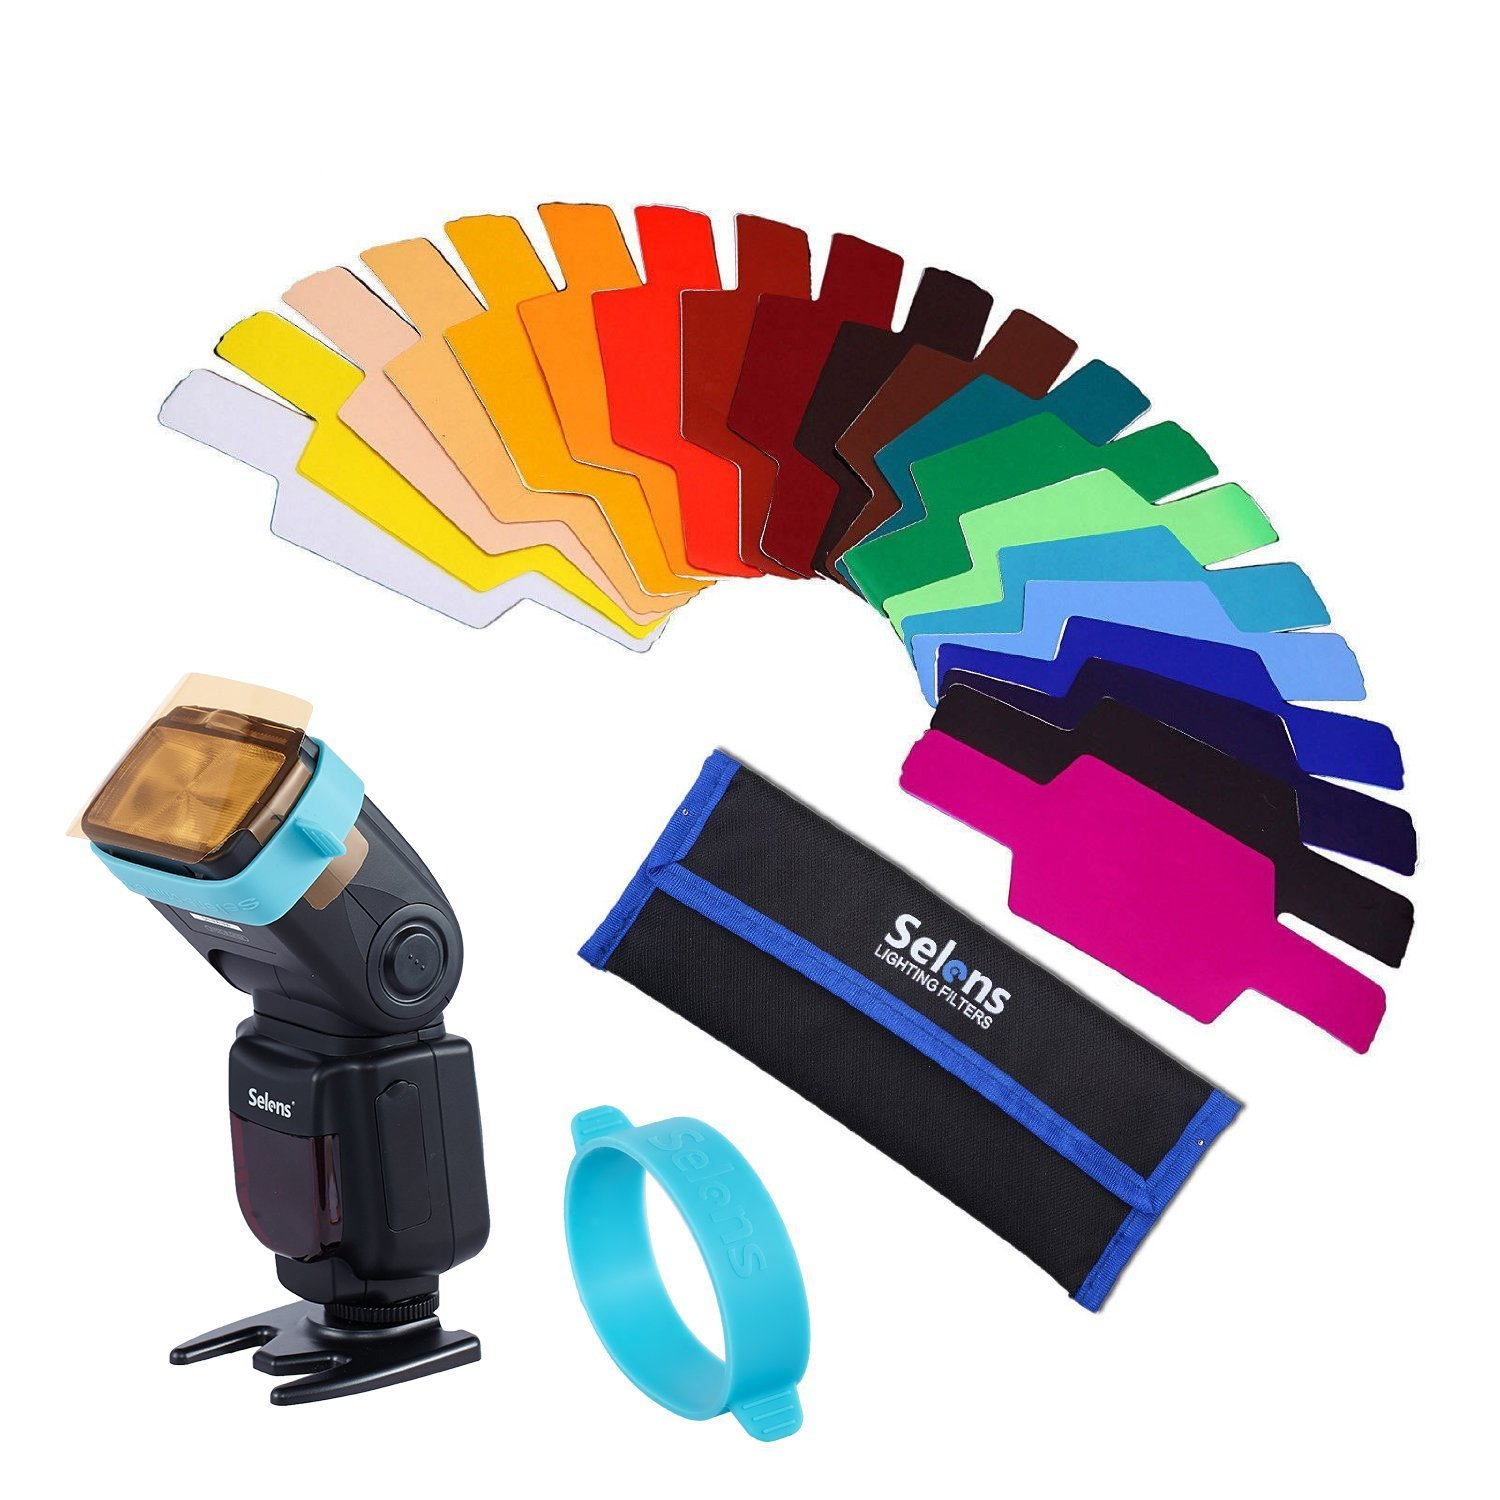 Selens Universal Flash Gels Lighting Filter - Combination Kits for Camera Flashlight (with Two Extra New Gels Bands) HengMing 2 gel-bands kit